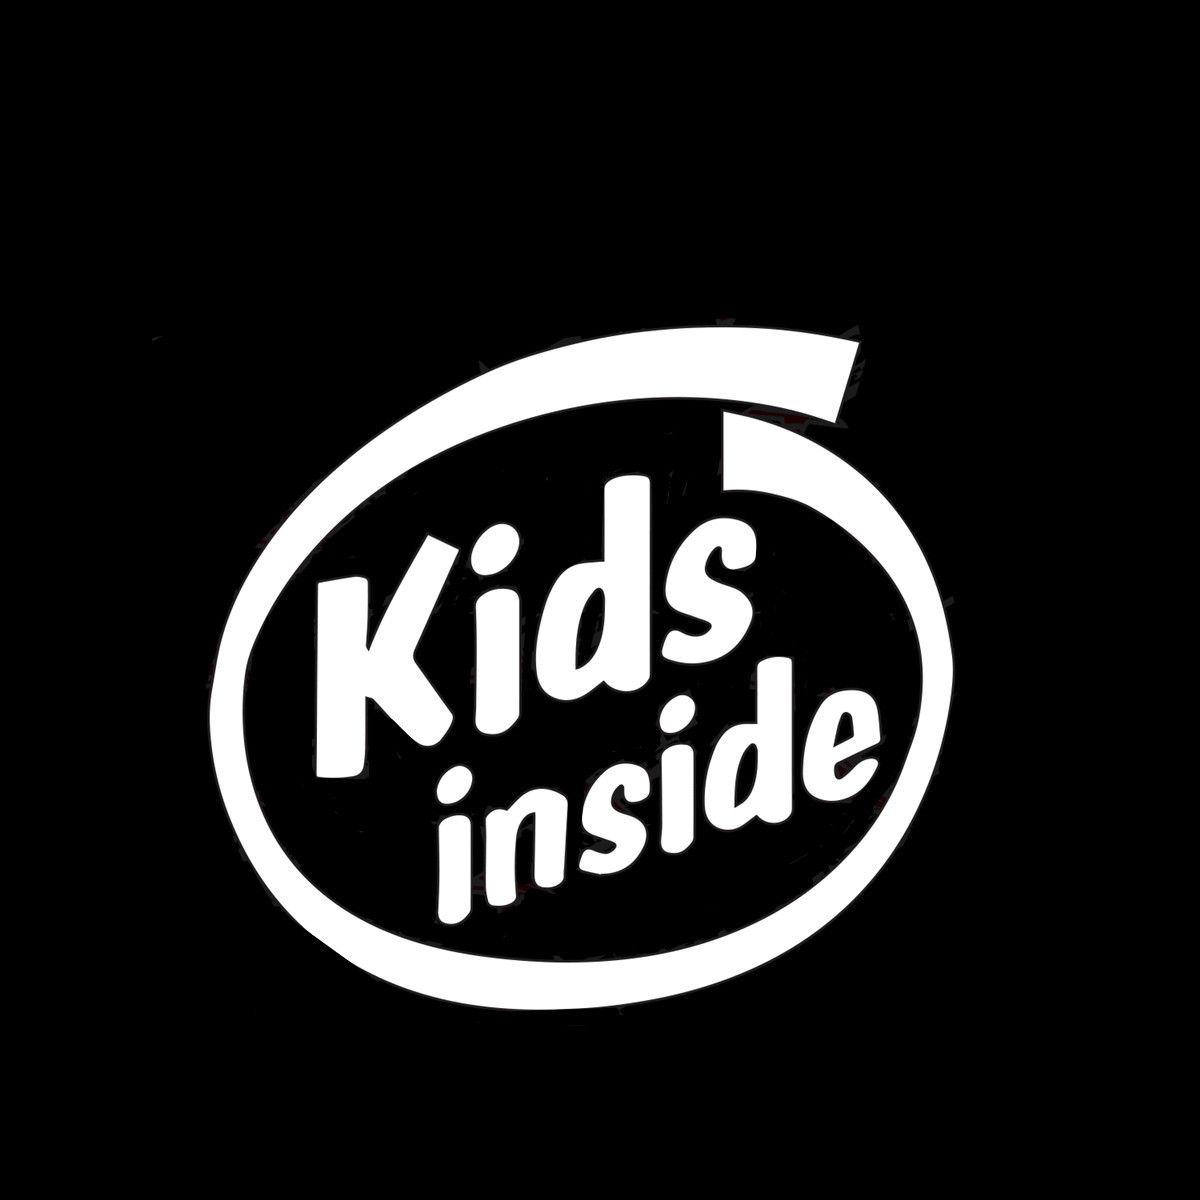 Words KIDS INSIDE Car Sticker Bumper Window Laptop Wall Home Glass Mirror Door Room Glass Vinyl Decal Decor Gift 11.5cmX12.7cm